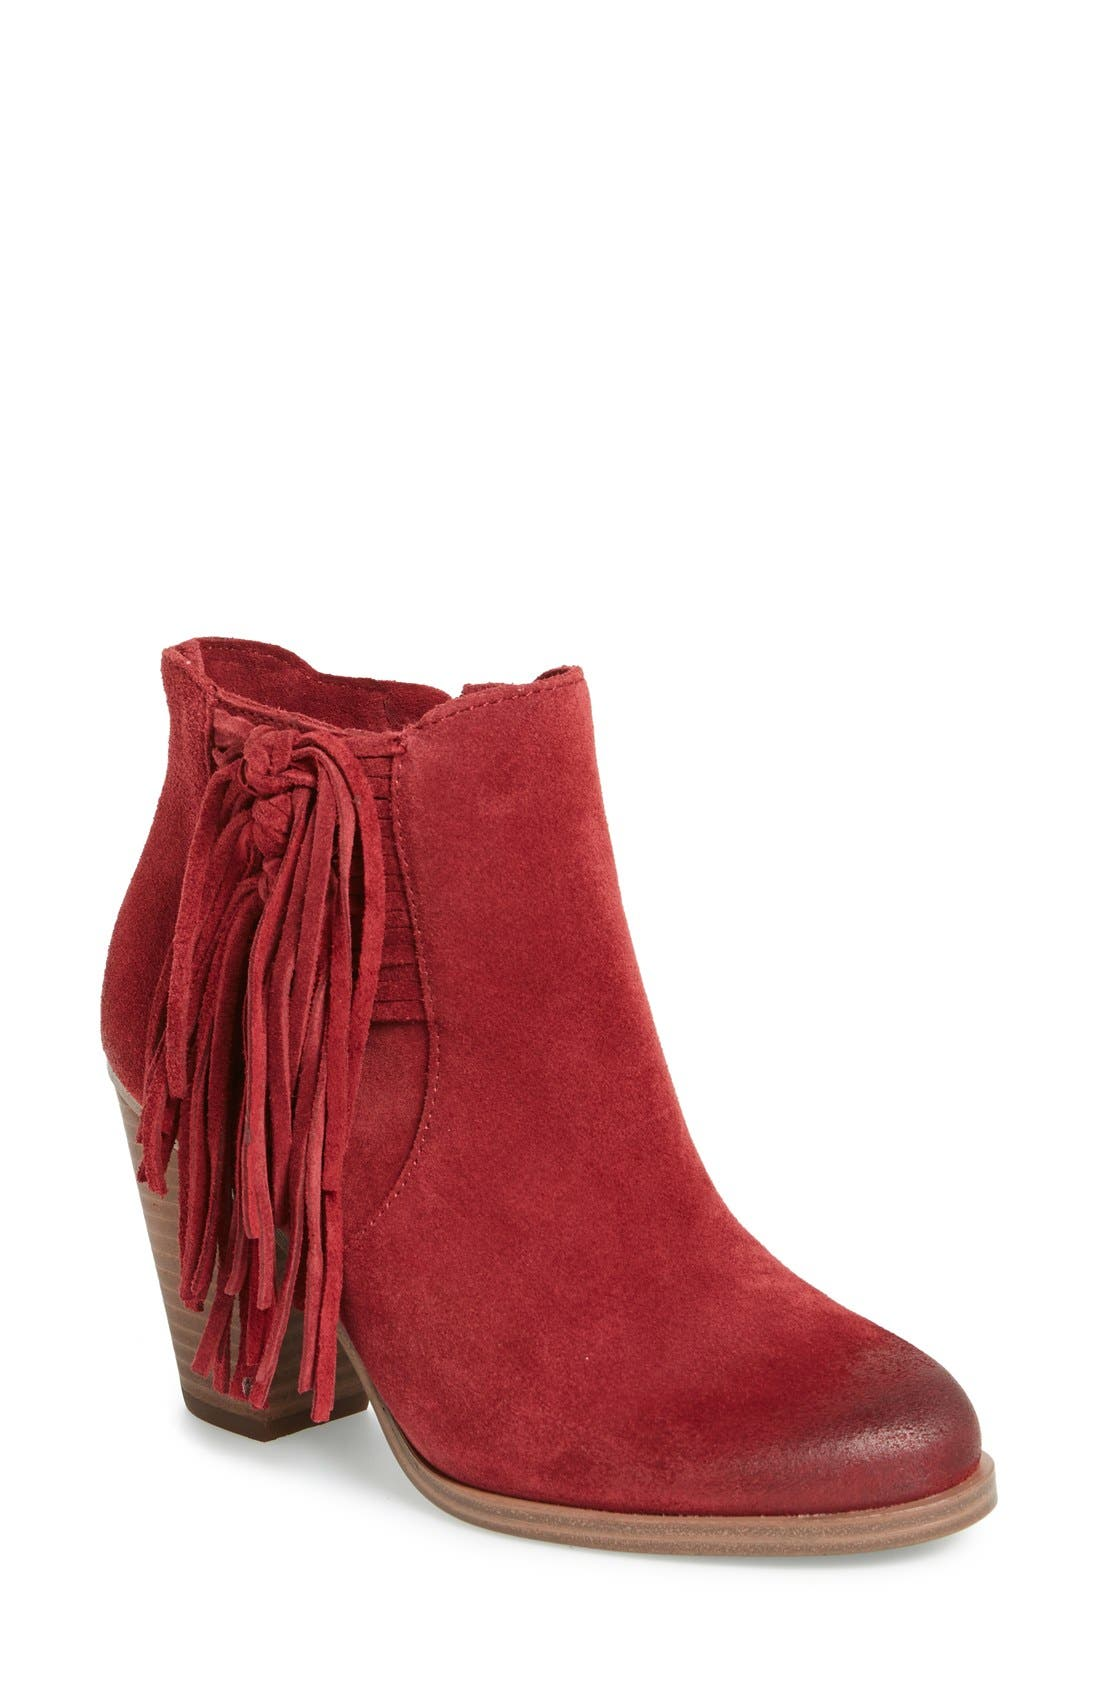 Alternate Image 1 Selected - Vince Camuto 'Harlin' Fringe Bootie (Women)